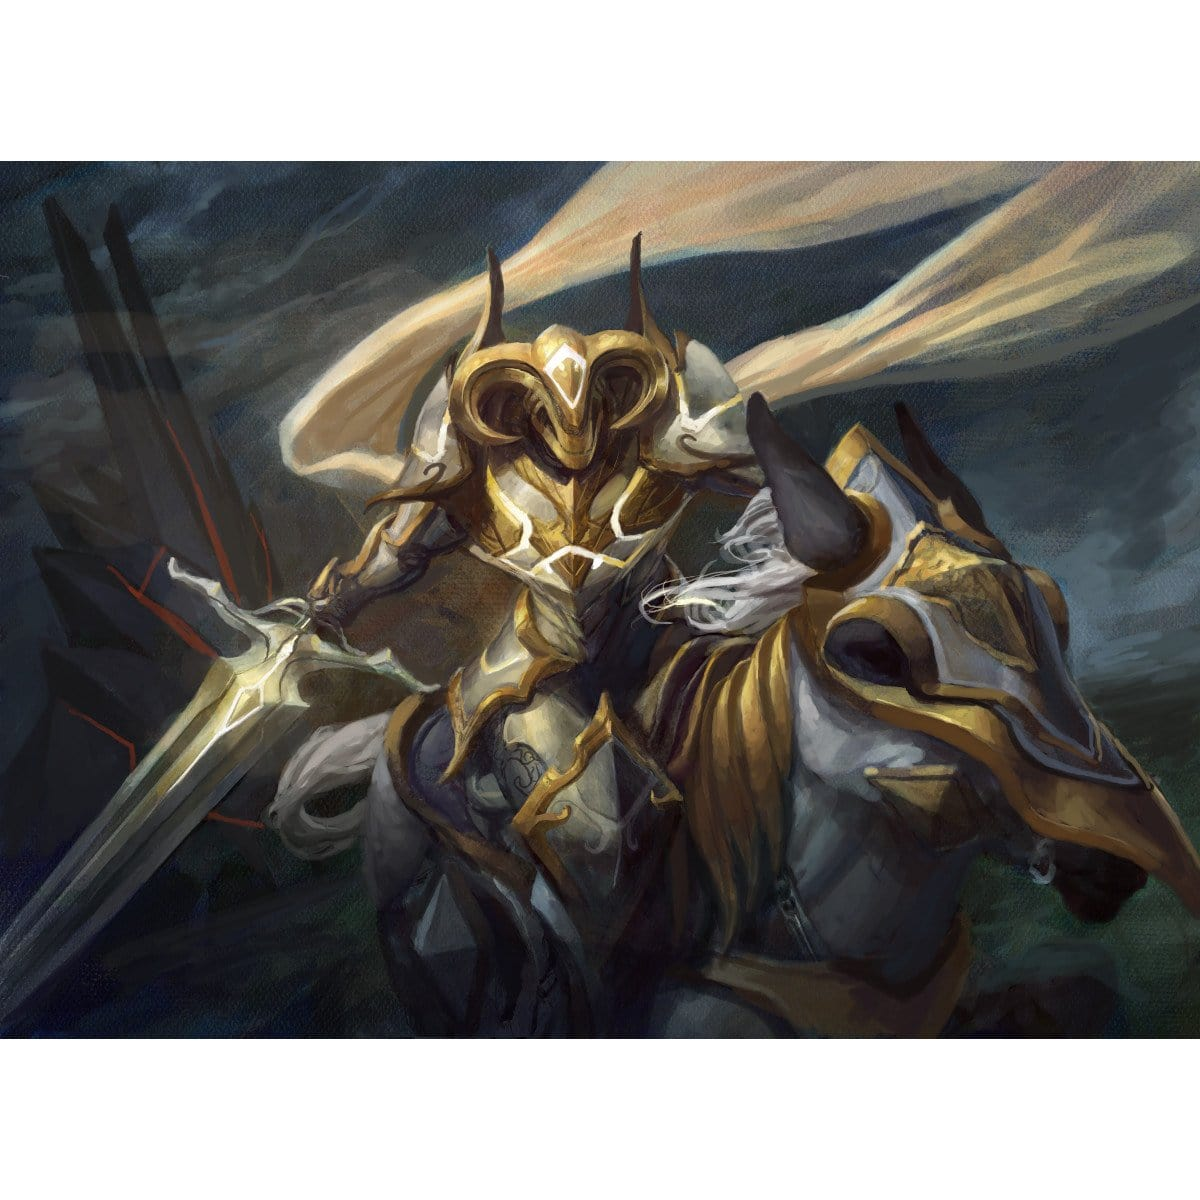 Knight of Glory Print - Print - Original Magic Art - Accessories for Magic the Gathering and other card games